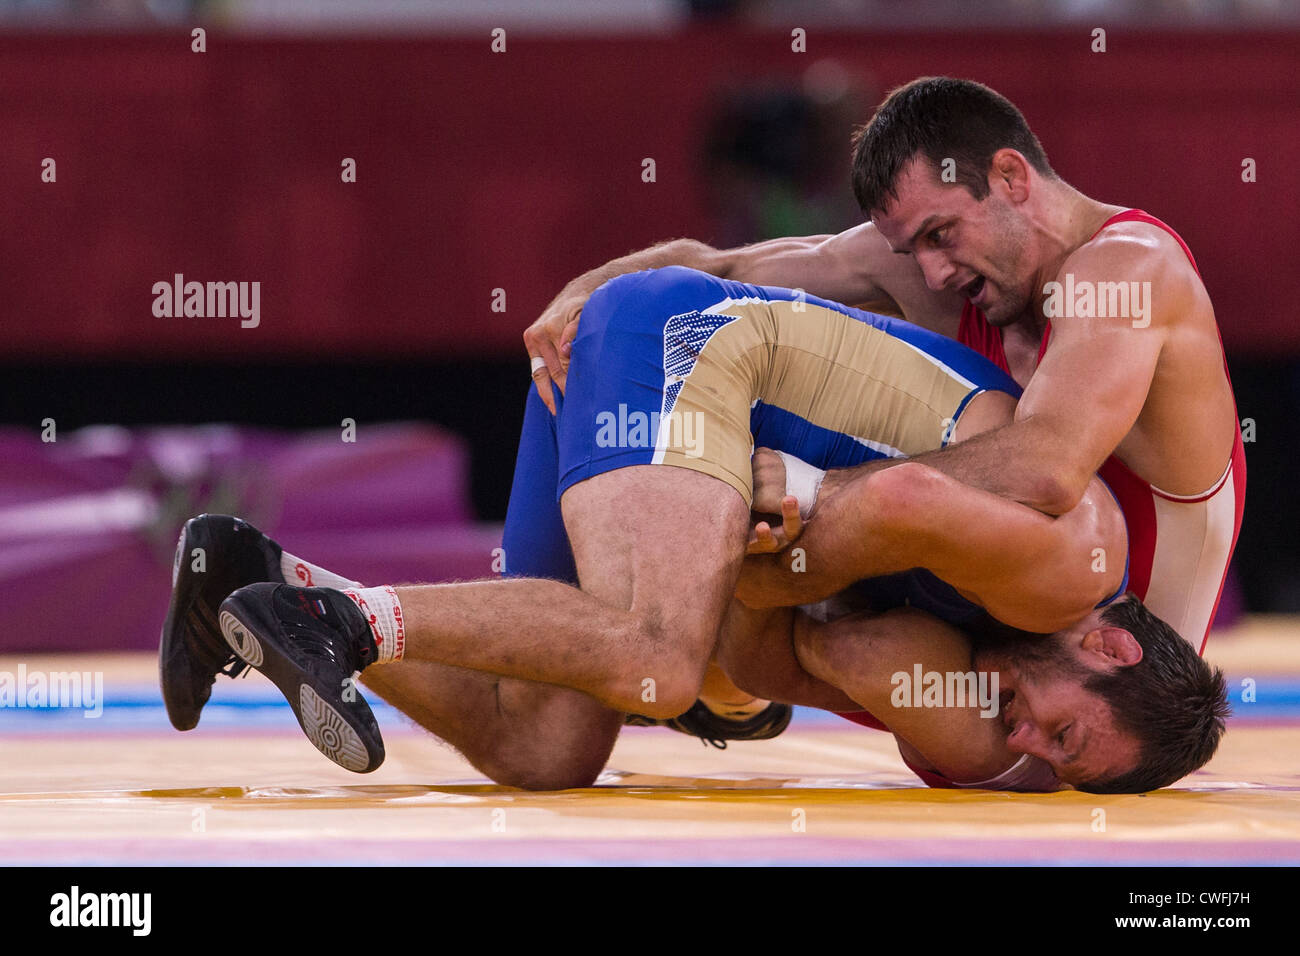 Denis Tsargush (RUS) -B- vs Matteo Giuda Gentry (CAN) in Uomini 74kg Freestyle Wrestling all'Olympic Immagini Stock